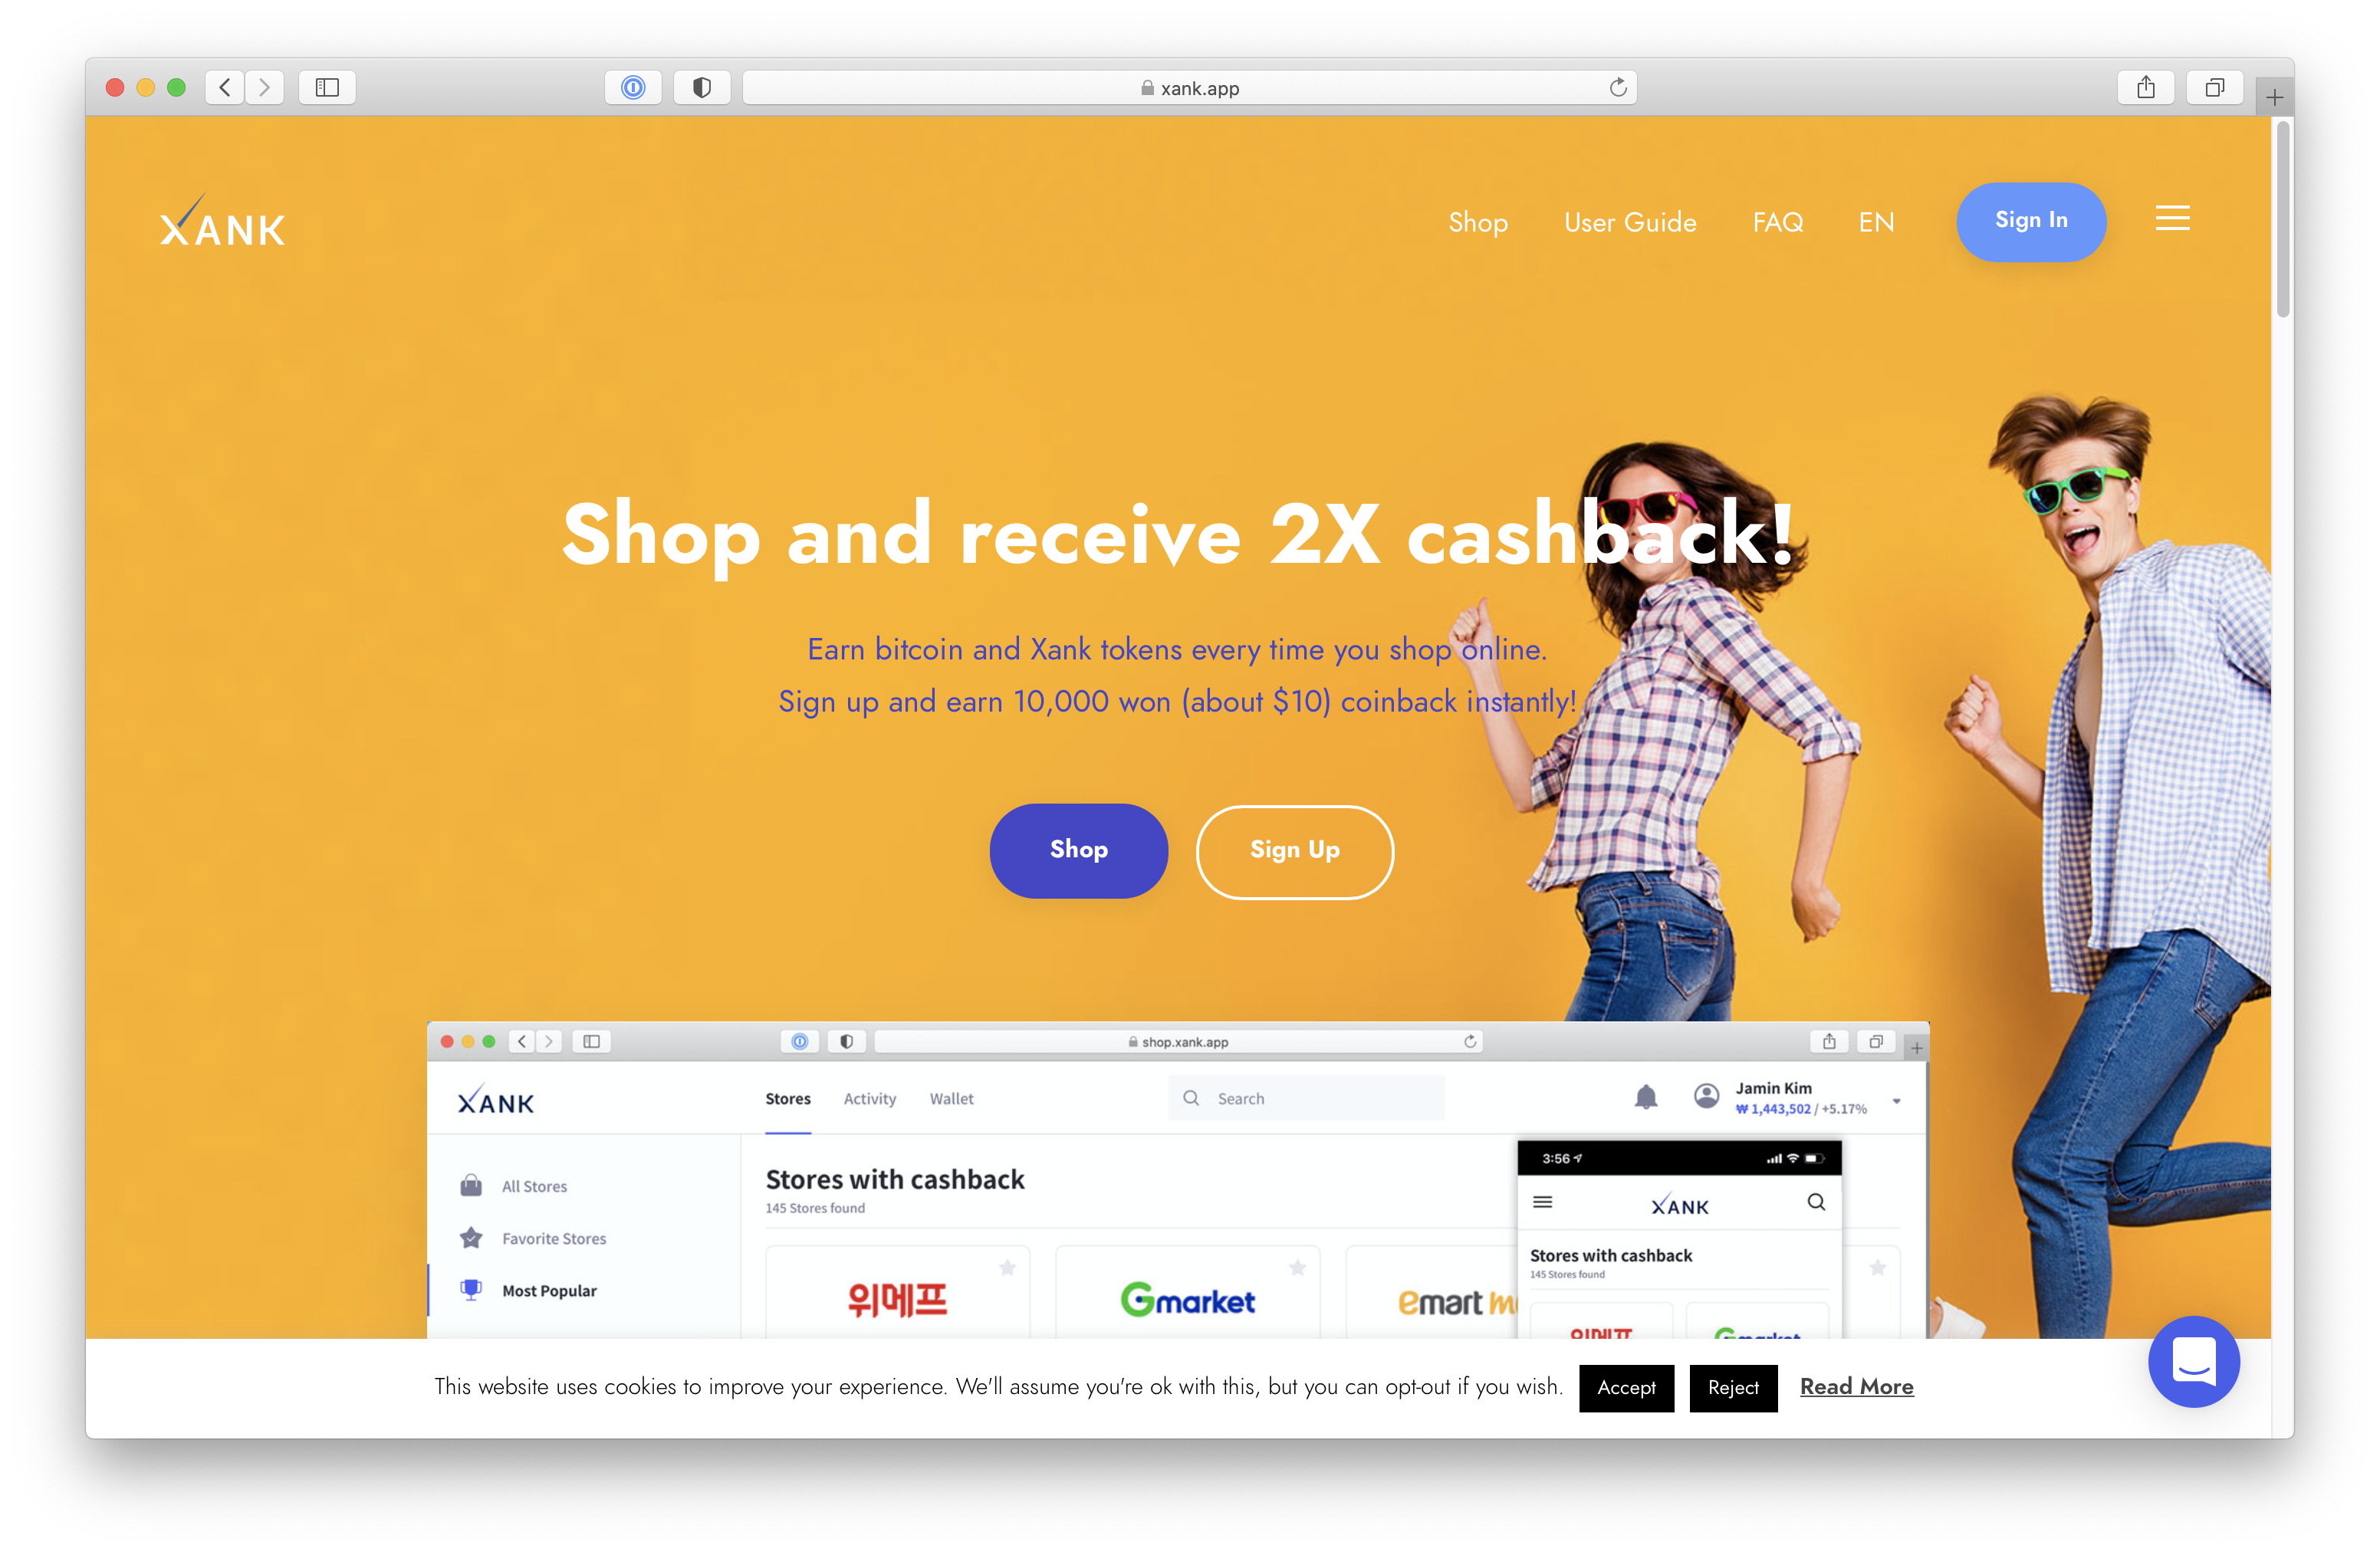 Shop and receive 2X cashback!